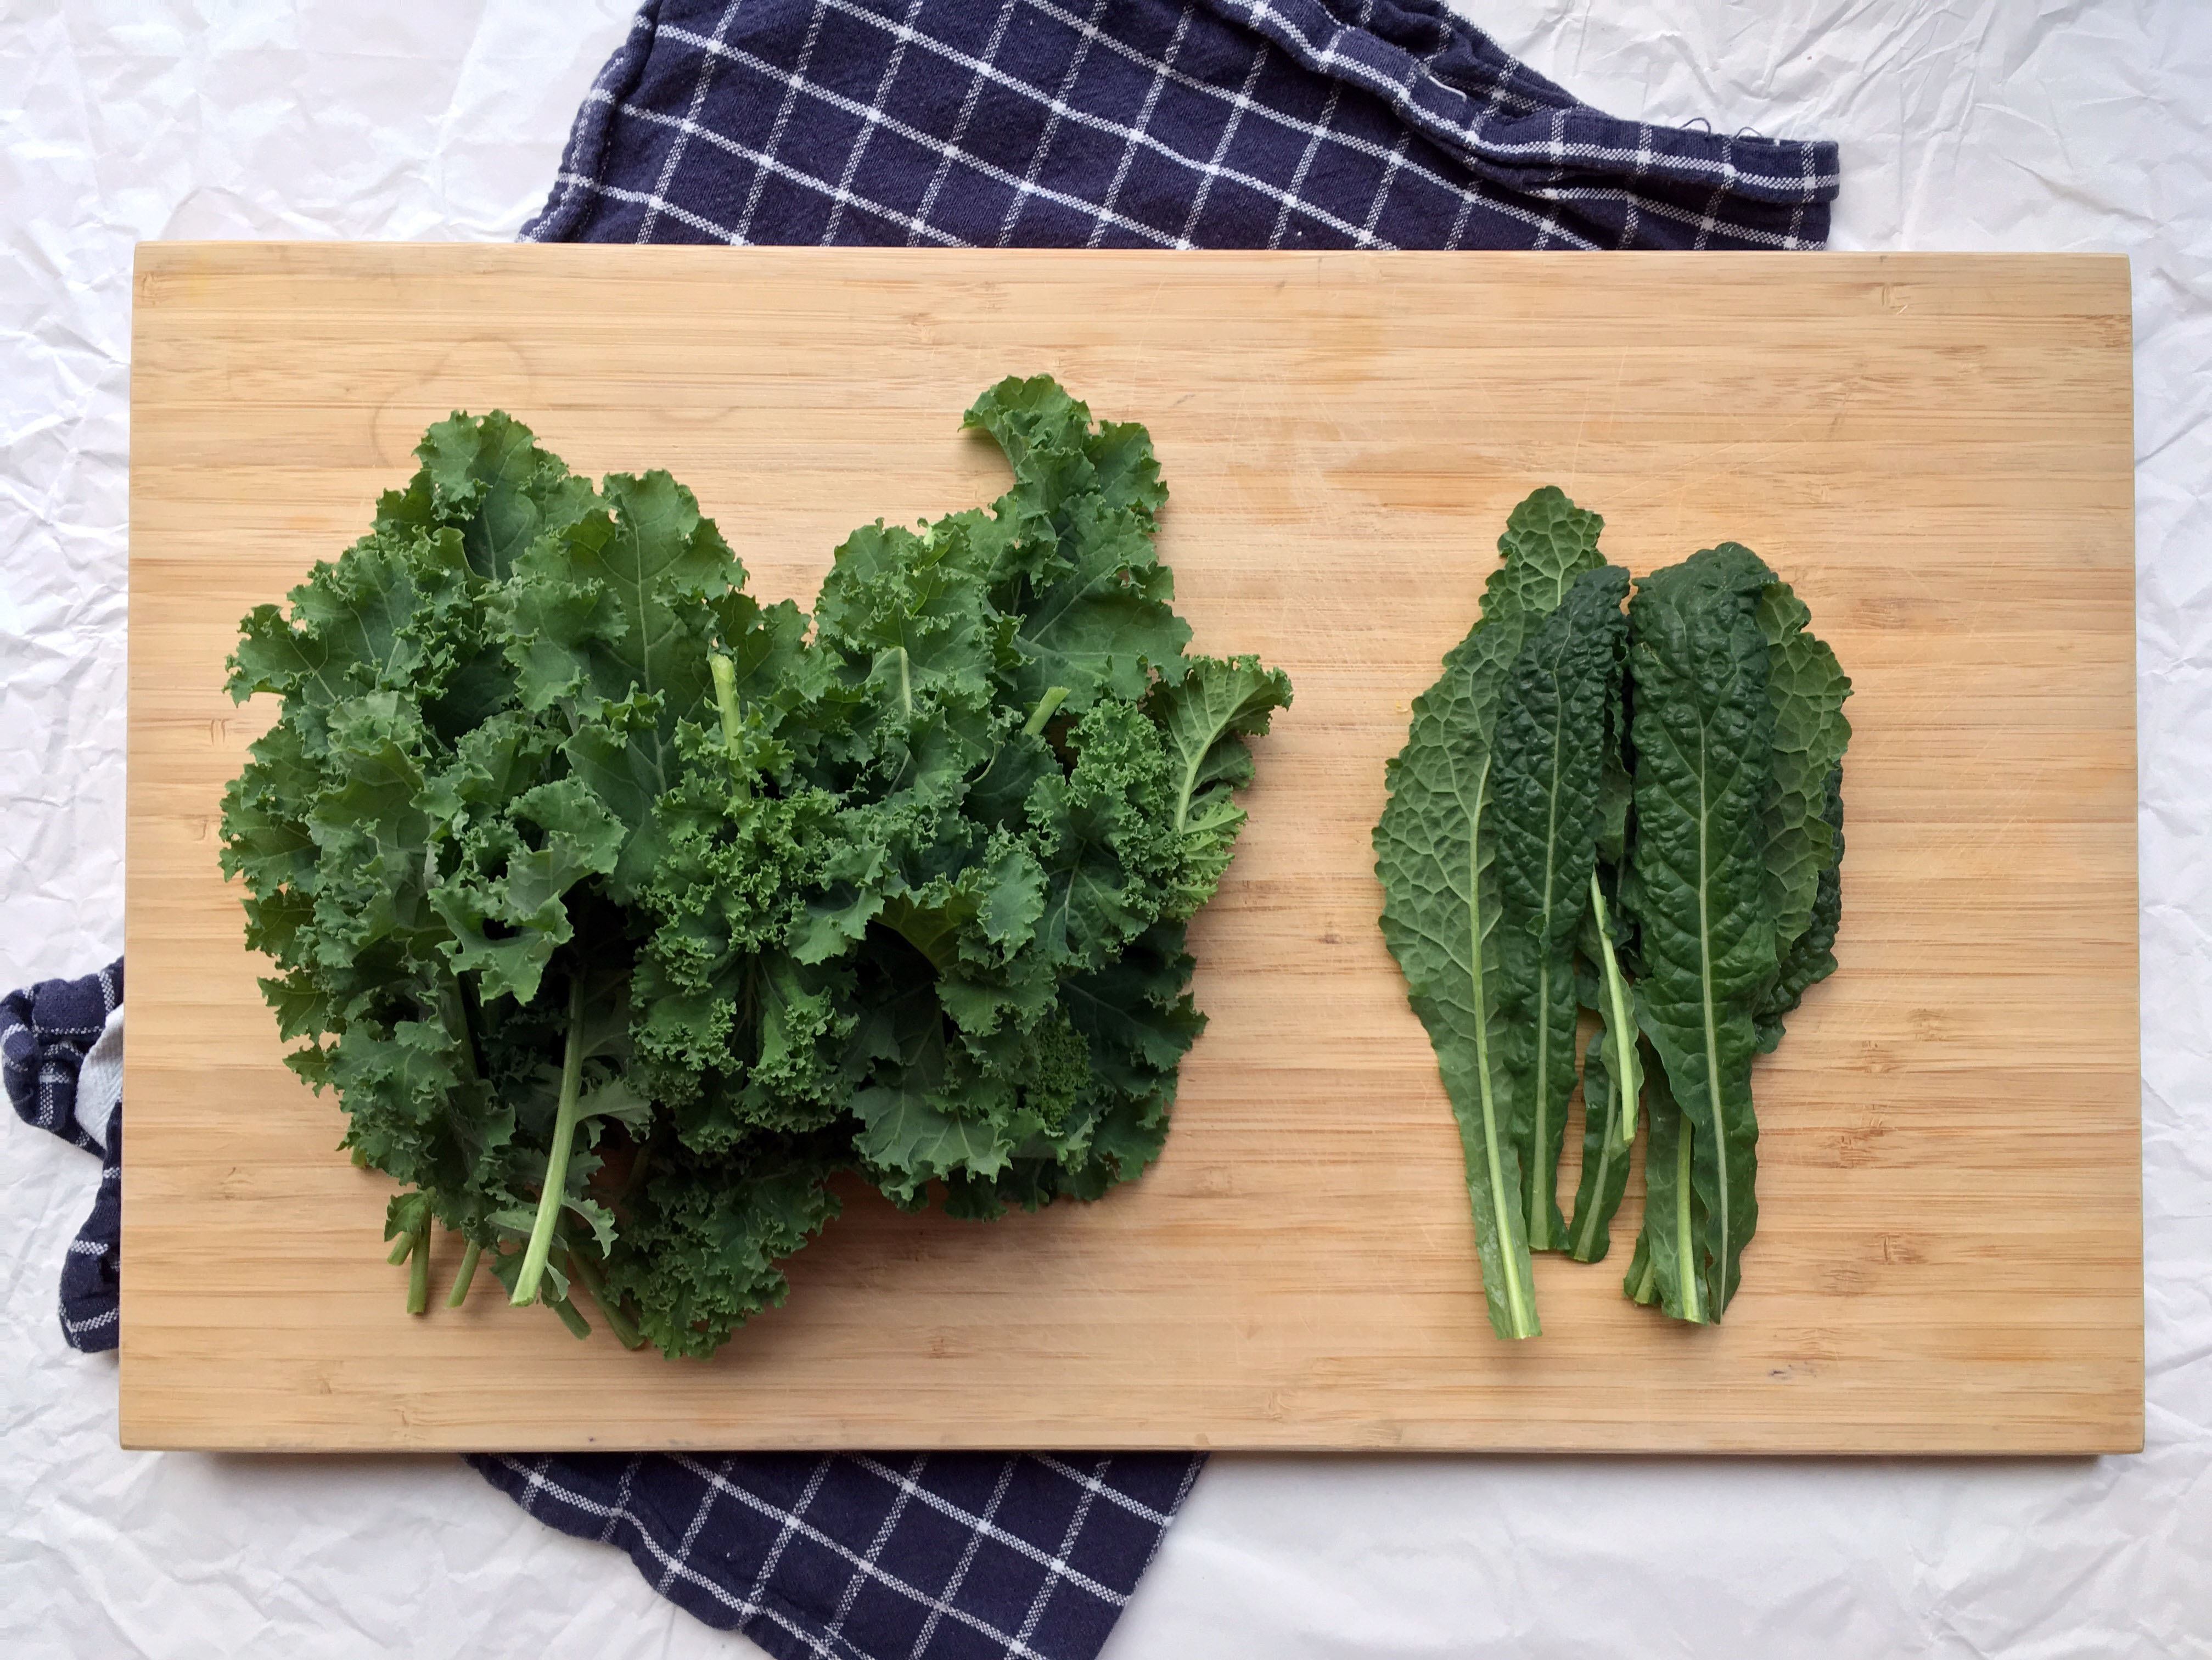 Kale and cavolo nero from my garden - The Histamine Friendly Kitchen